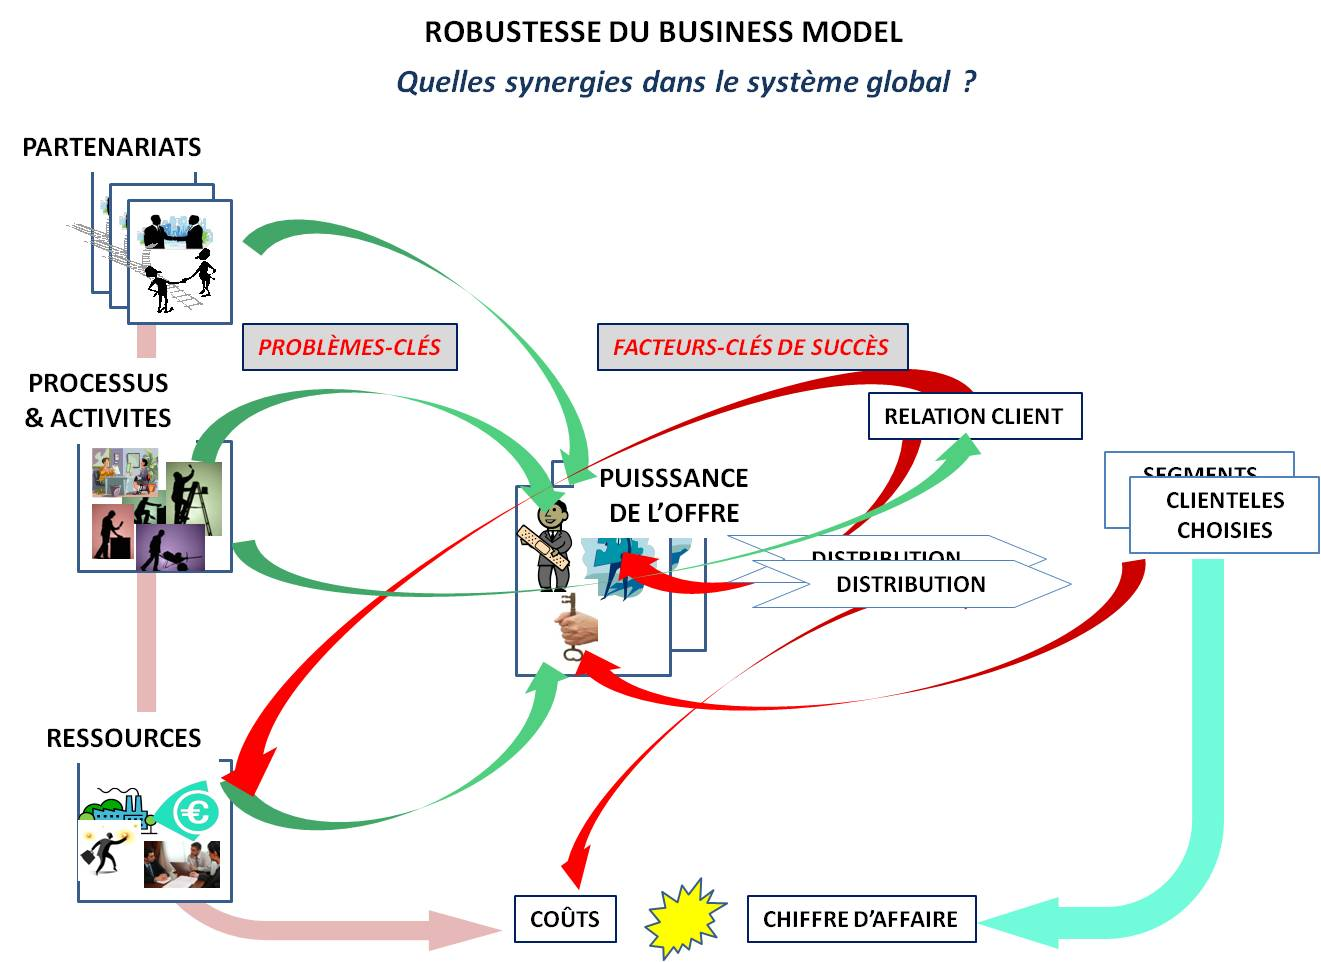 Robustesse du Business model